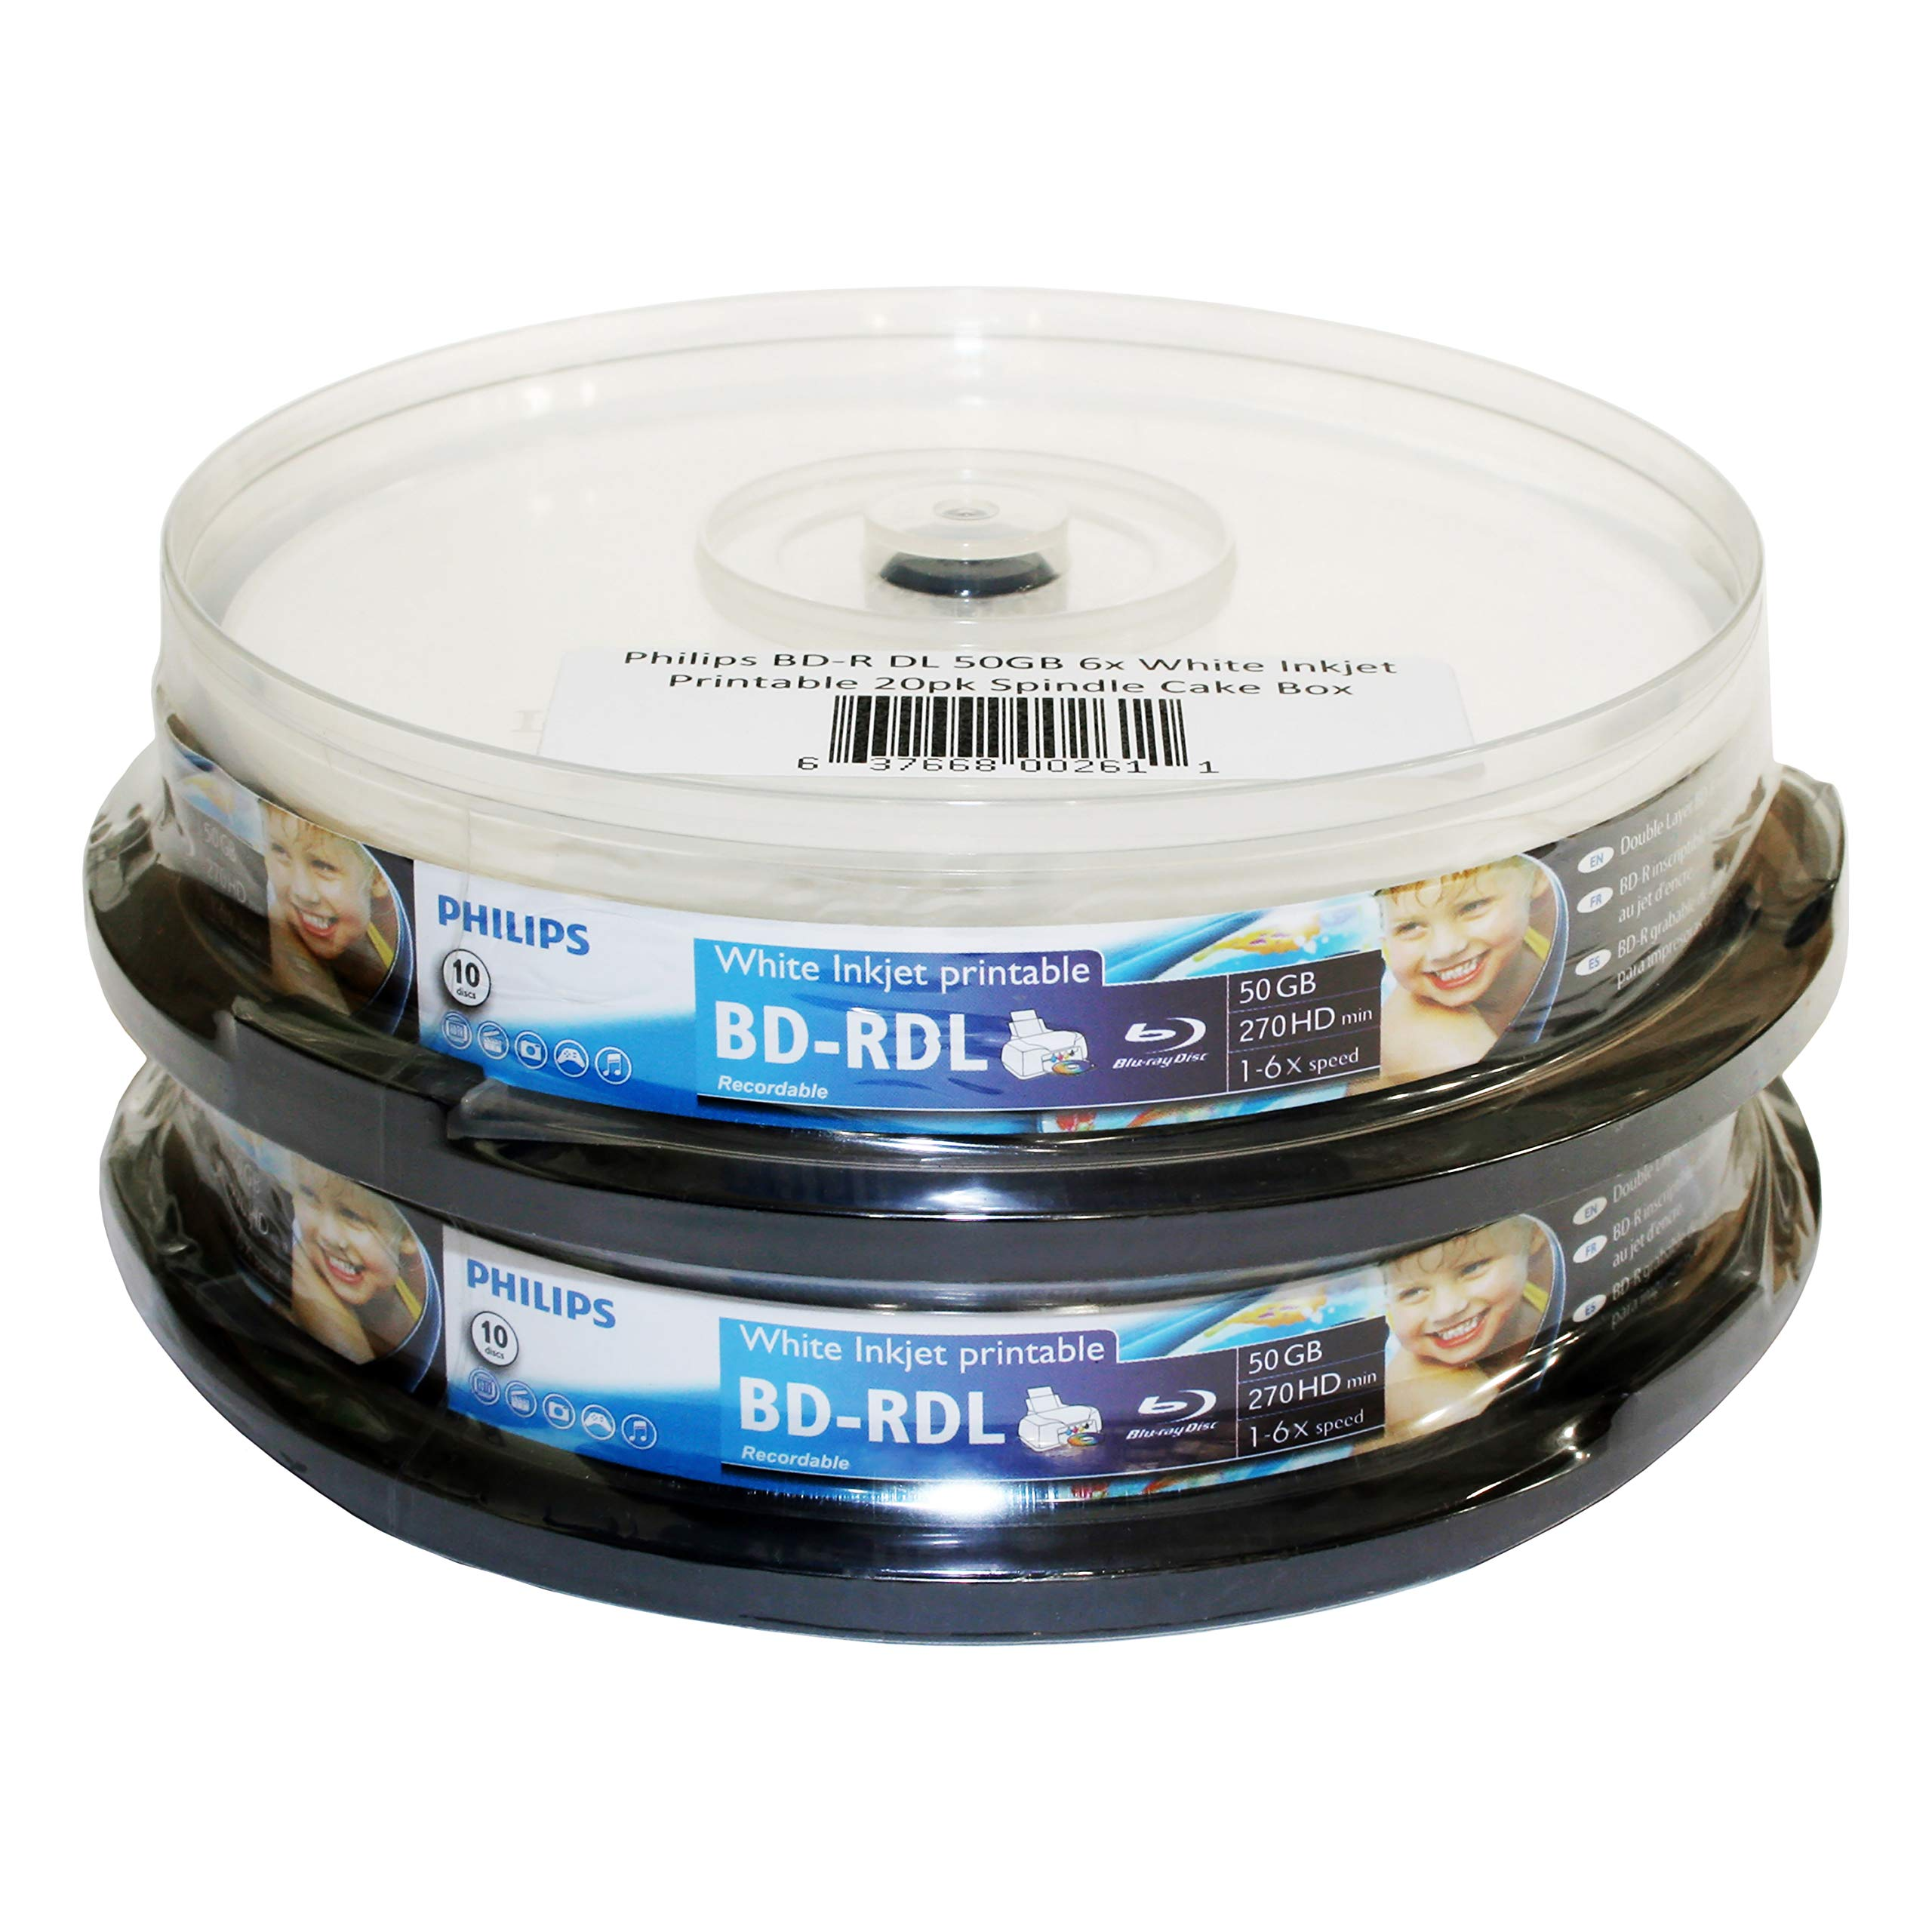 Philips BD-R DL 50GB 6X White Inkjet Printable 20pk Spindle Cake Box